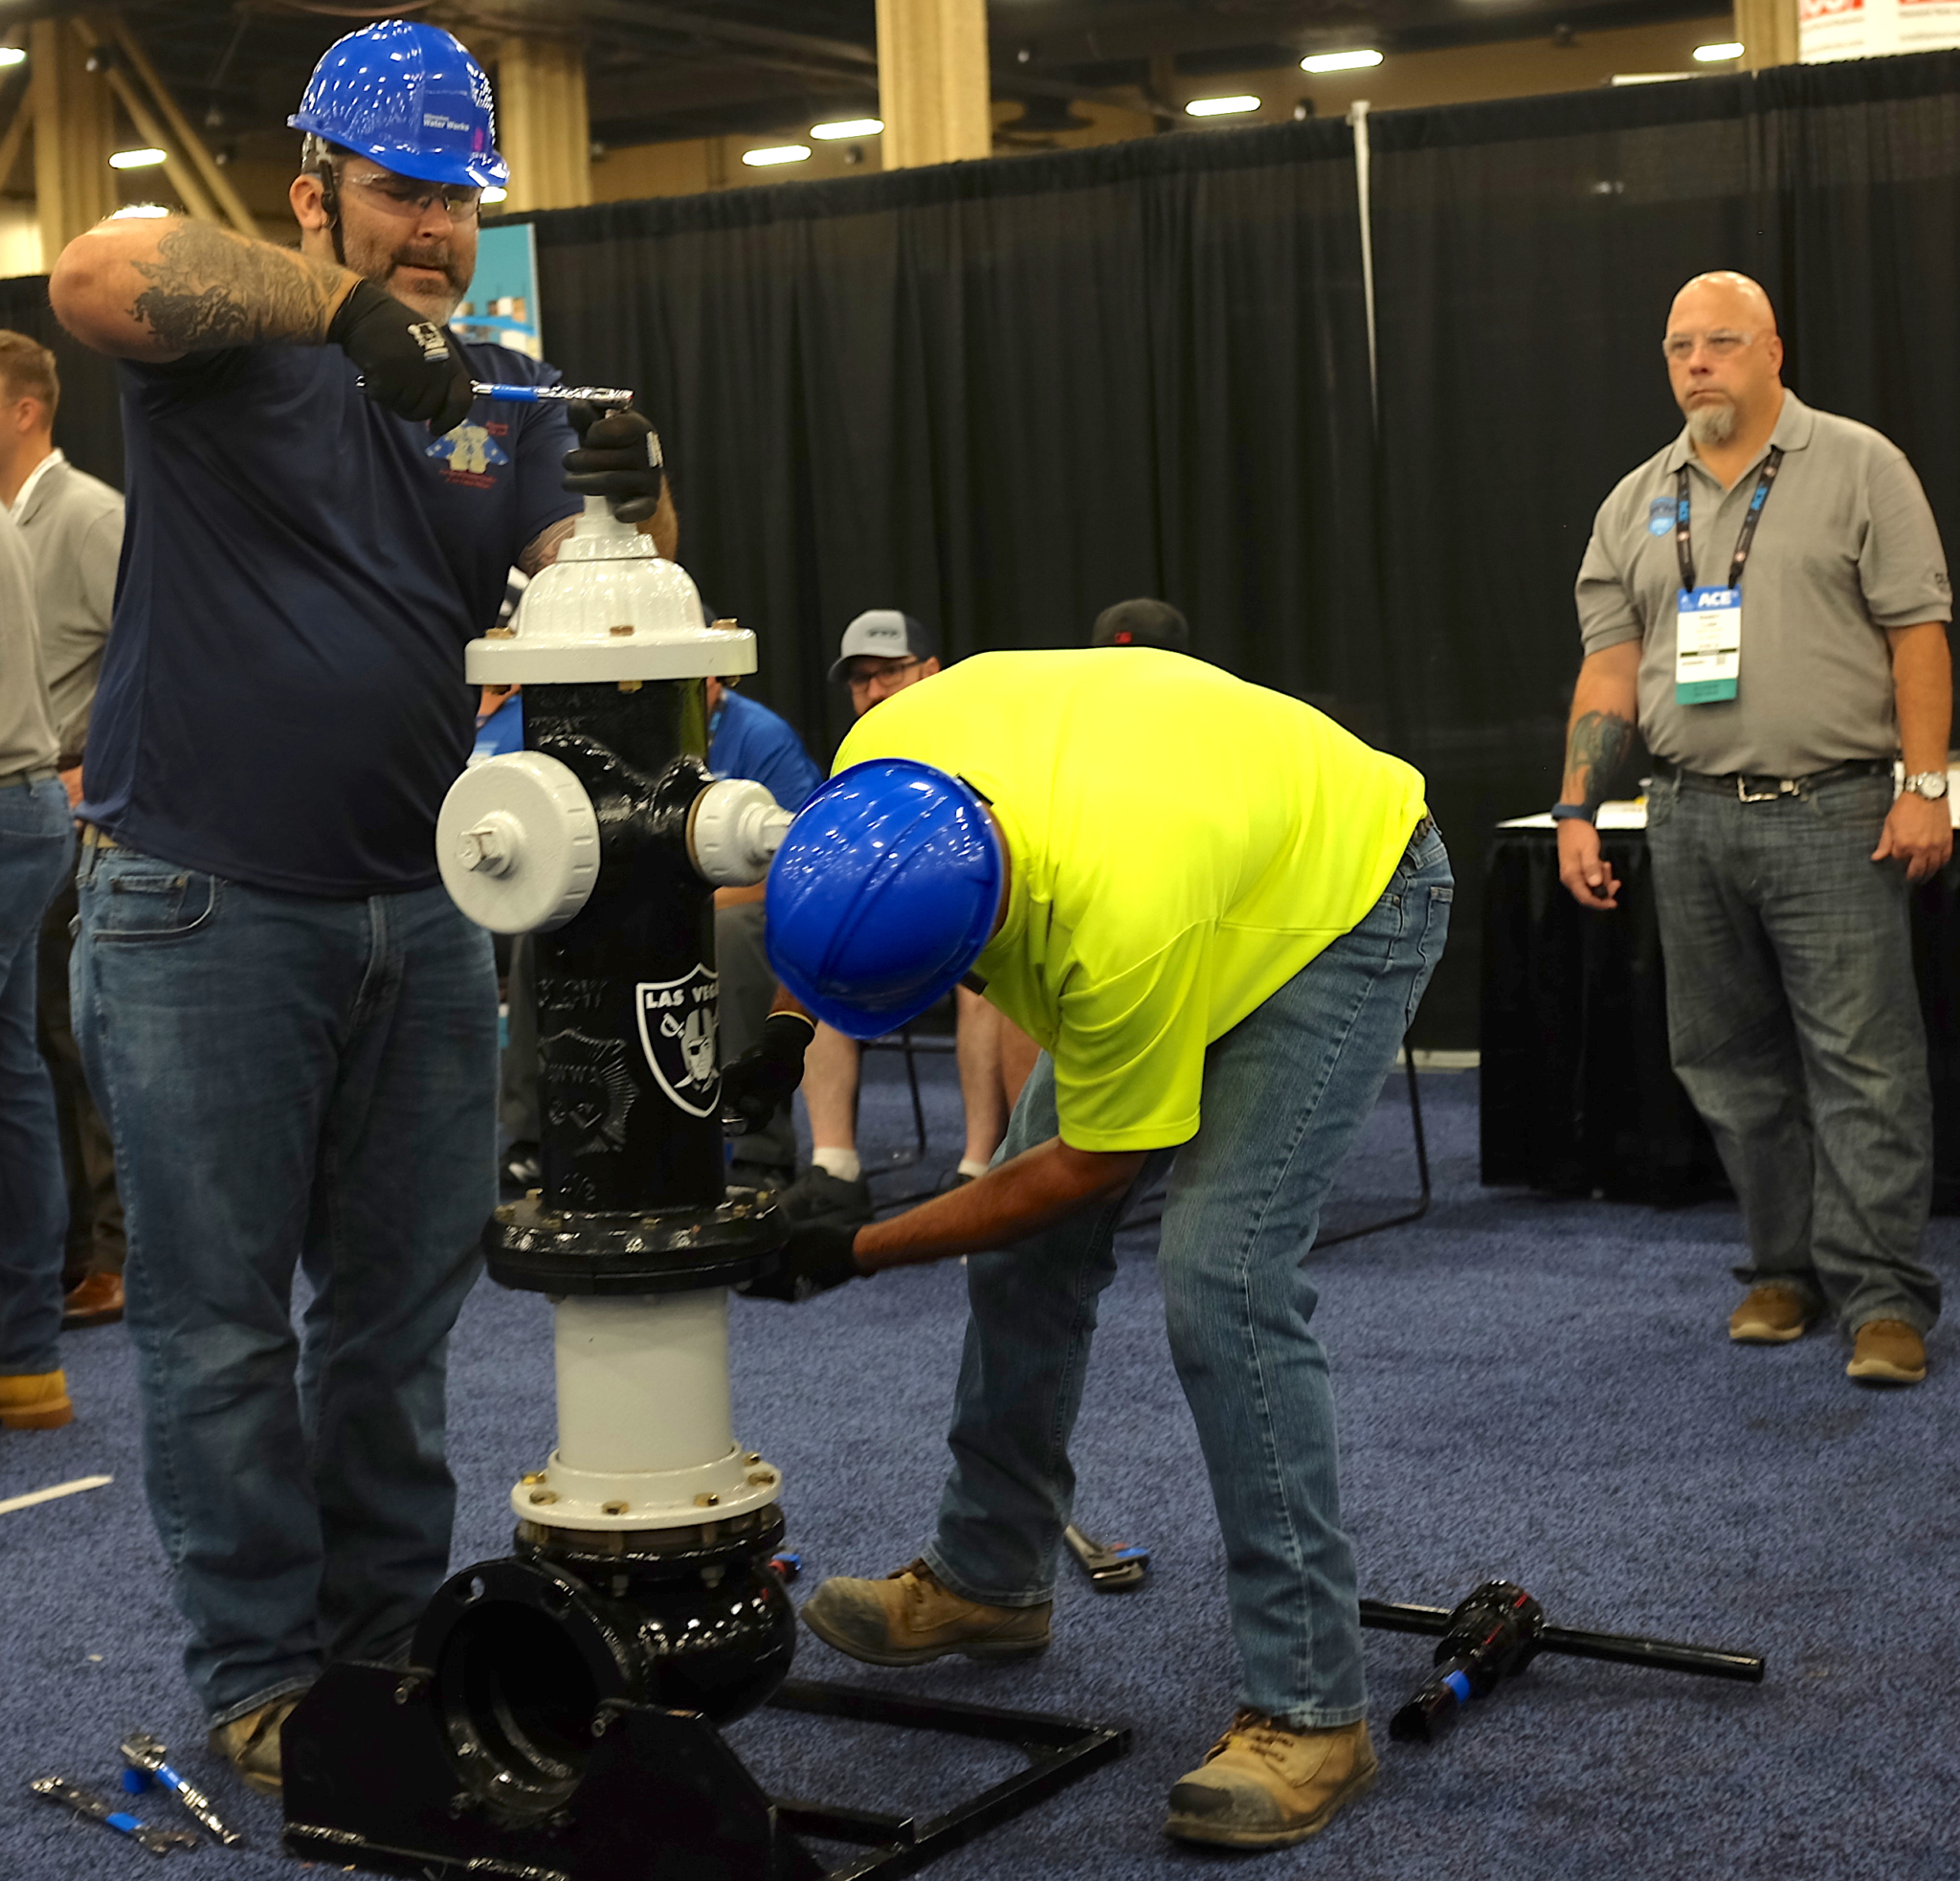 Workers from the city of Milwaukee participate in the Hydrant Hysteria competition to assemble a hydrant as quickly as possible